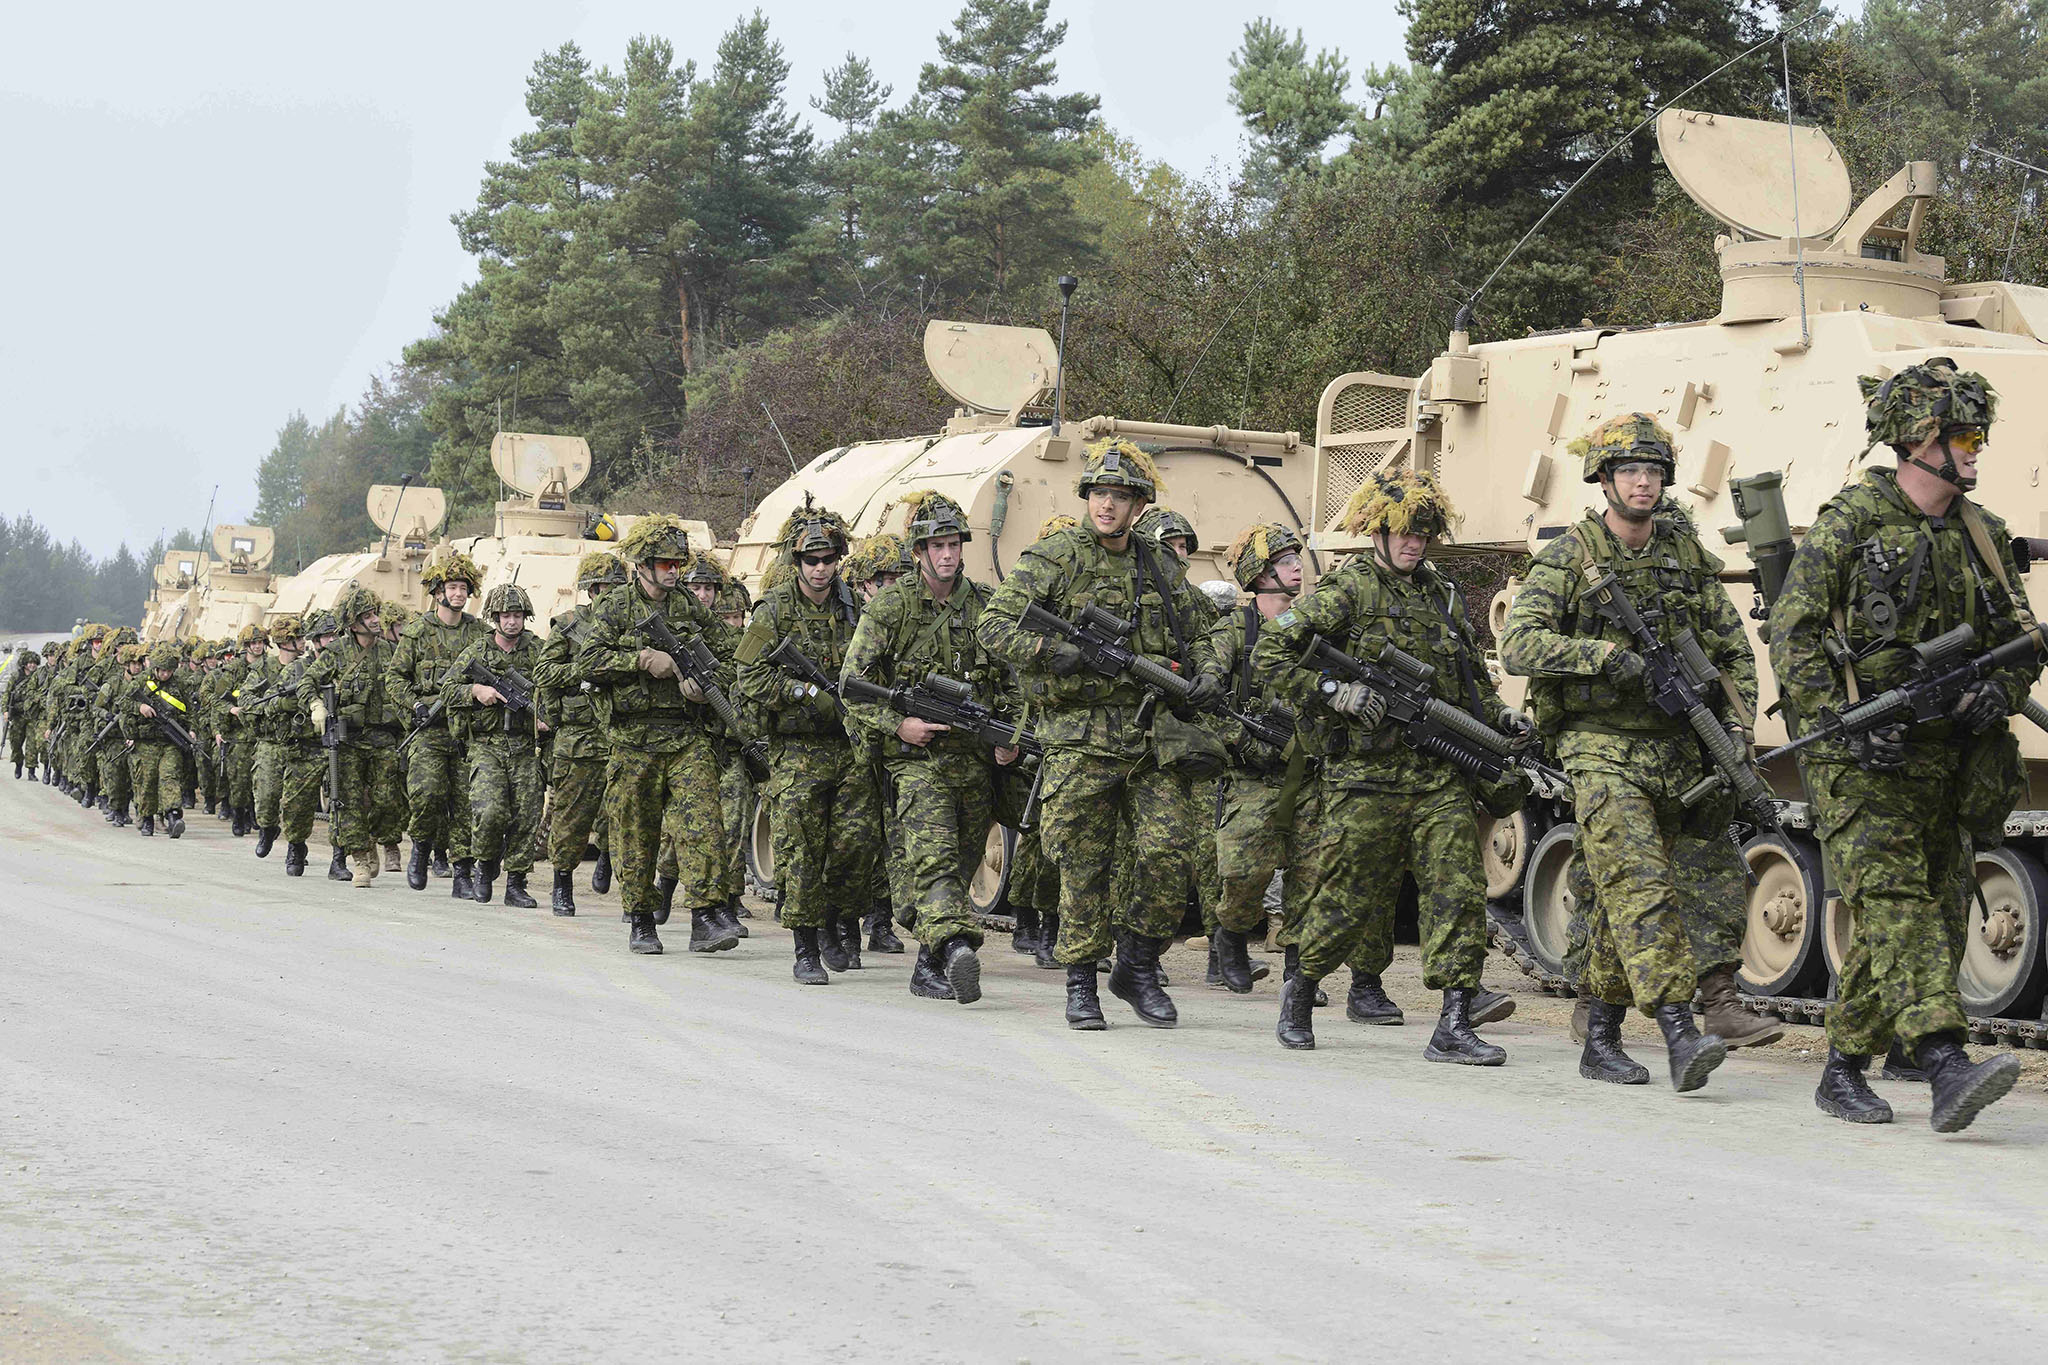 Germany. 19 October 2014 – Members of Oscar Company Group, 3rd Battalion, the Royal Canadian Regiment walk to the HEAT Trainer to practice rollover drills during Exercise COMBINED RESOLVE III in Germany on October 19, 2014. (Photo: Corporal Dolores)